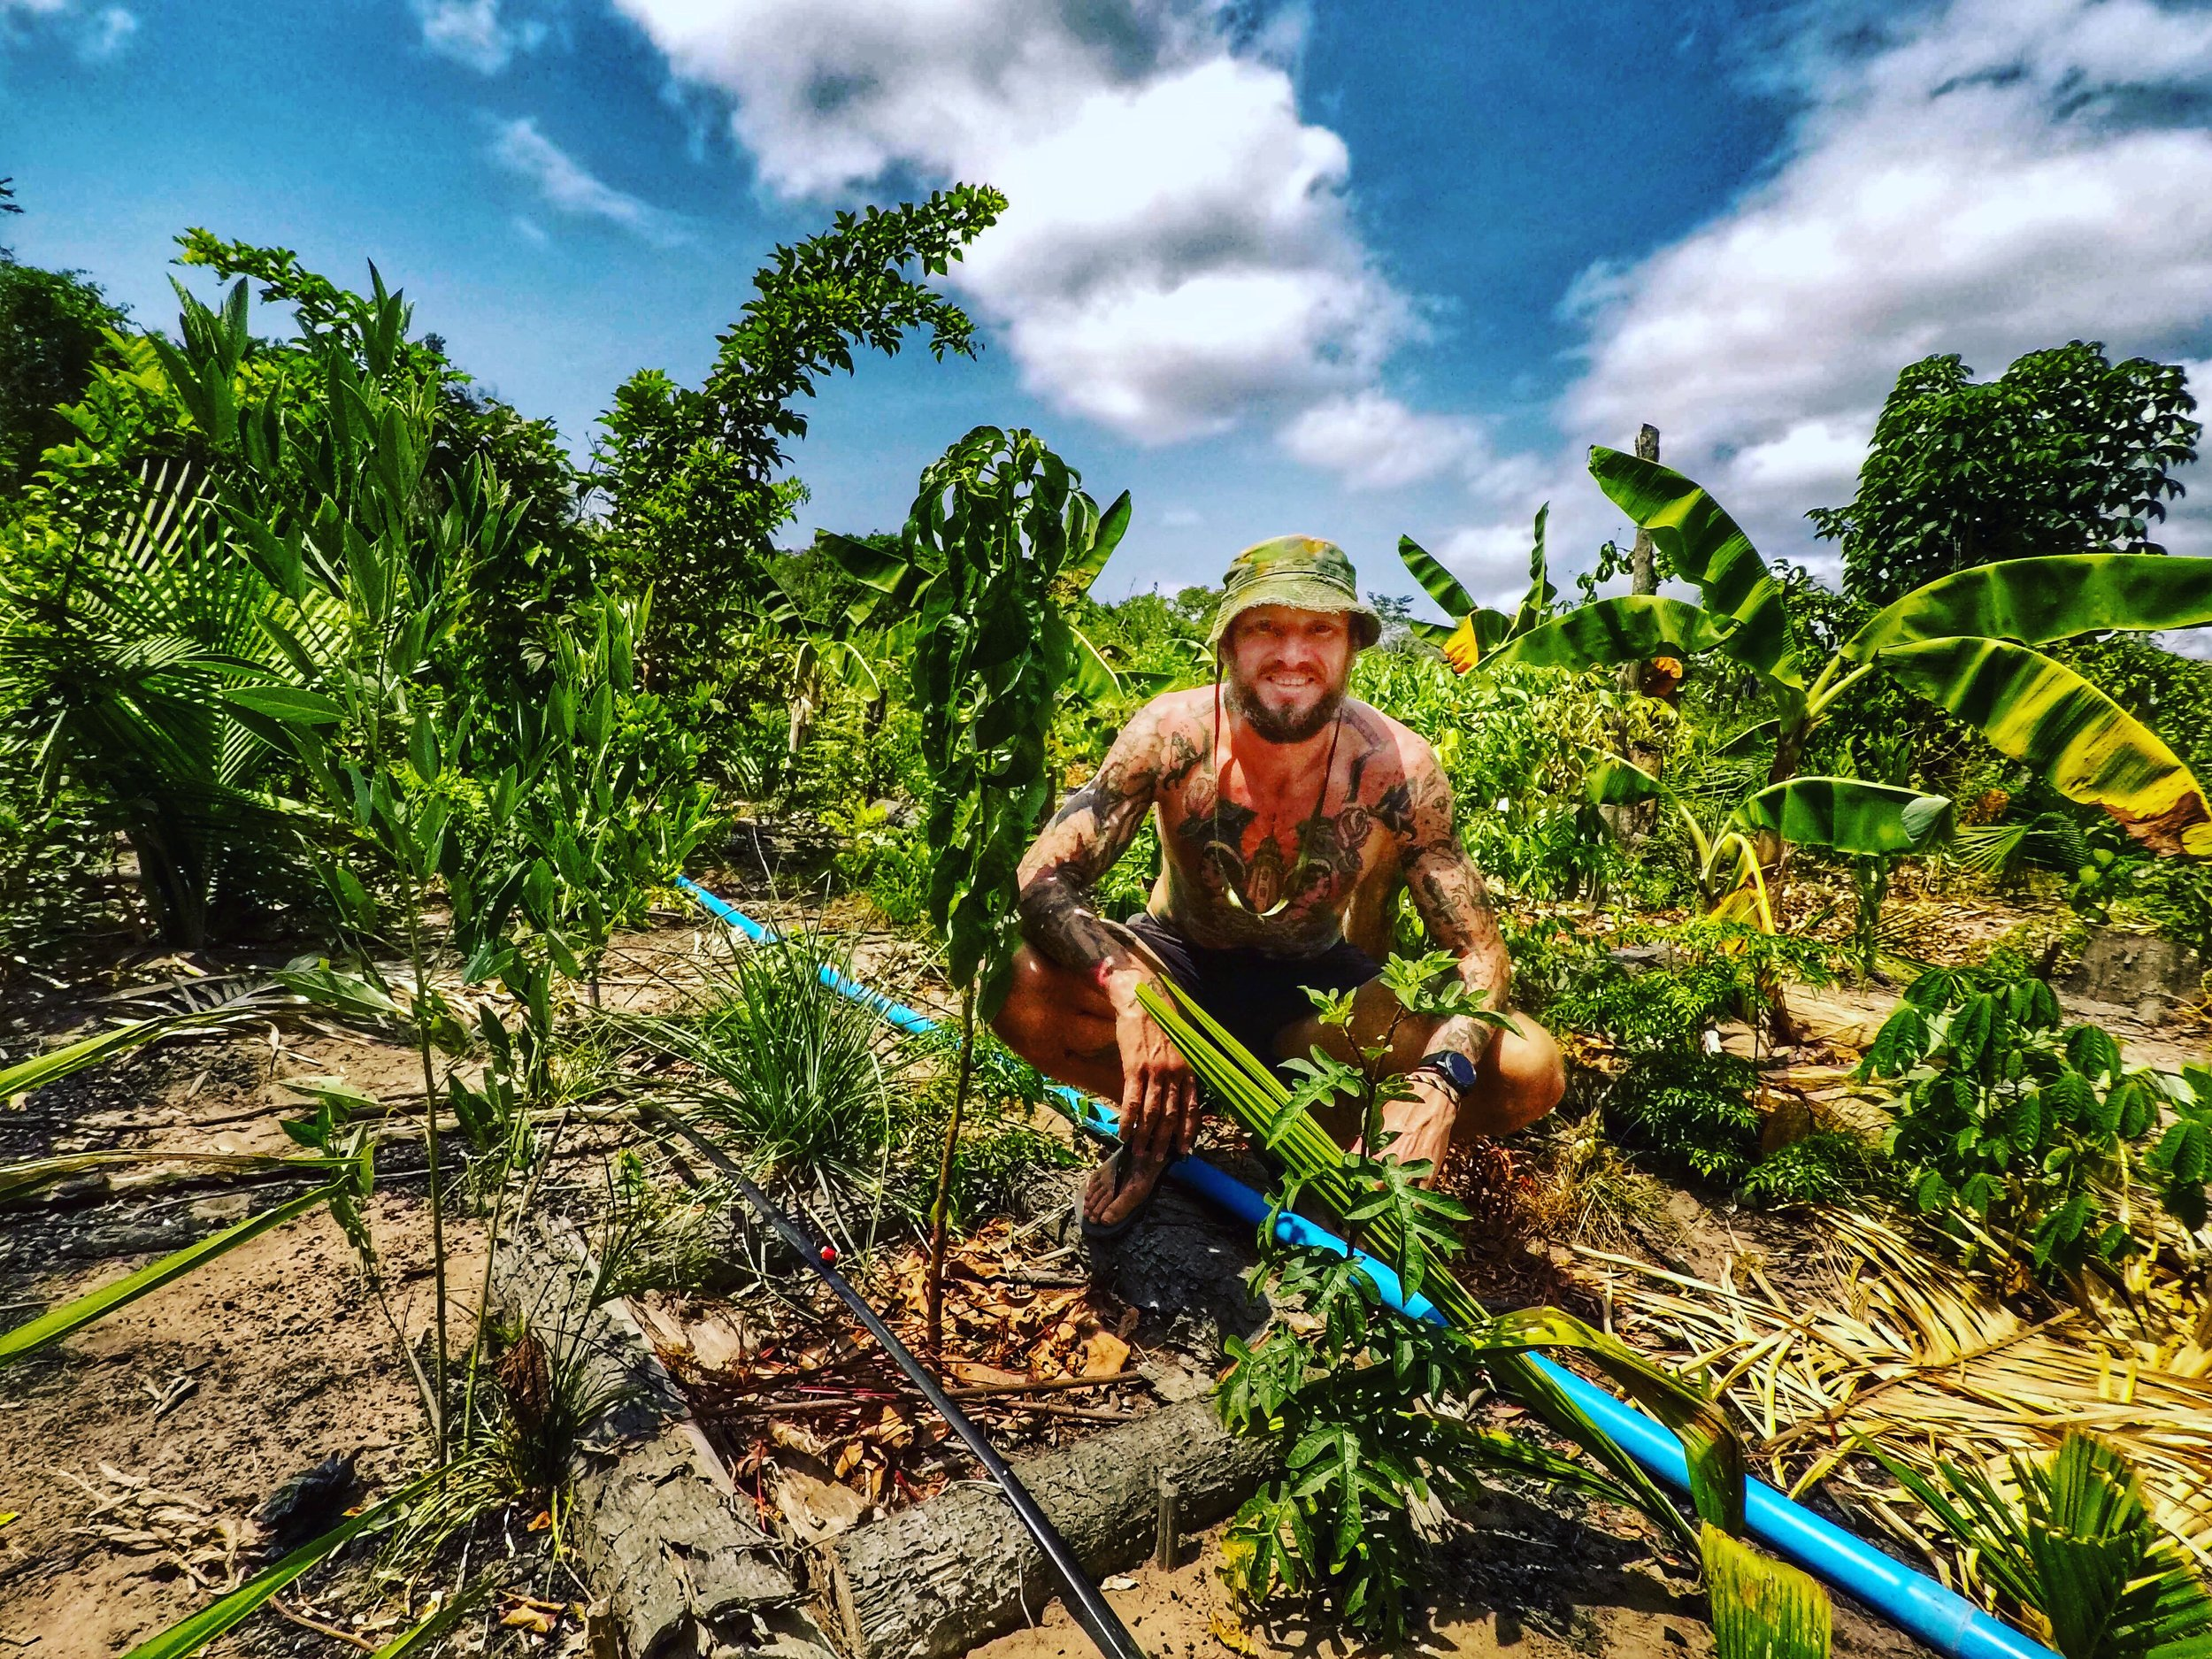 Picture: Helping Beto, a local boy, lay some irrigation for the crops. We achieved this by working in harmony utilising all the same communication methods I talk about in this blog.